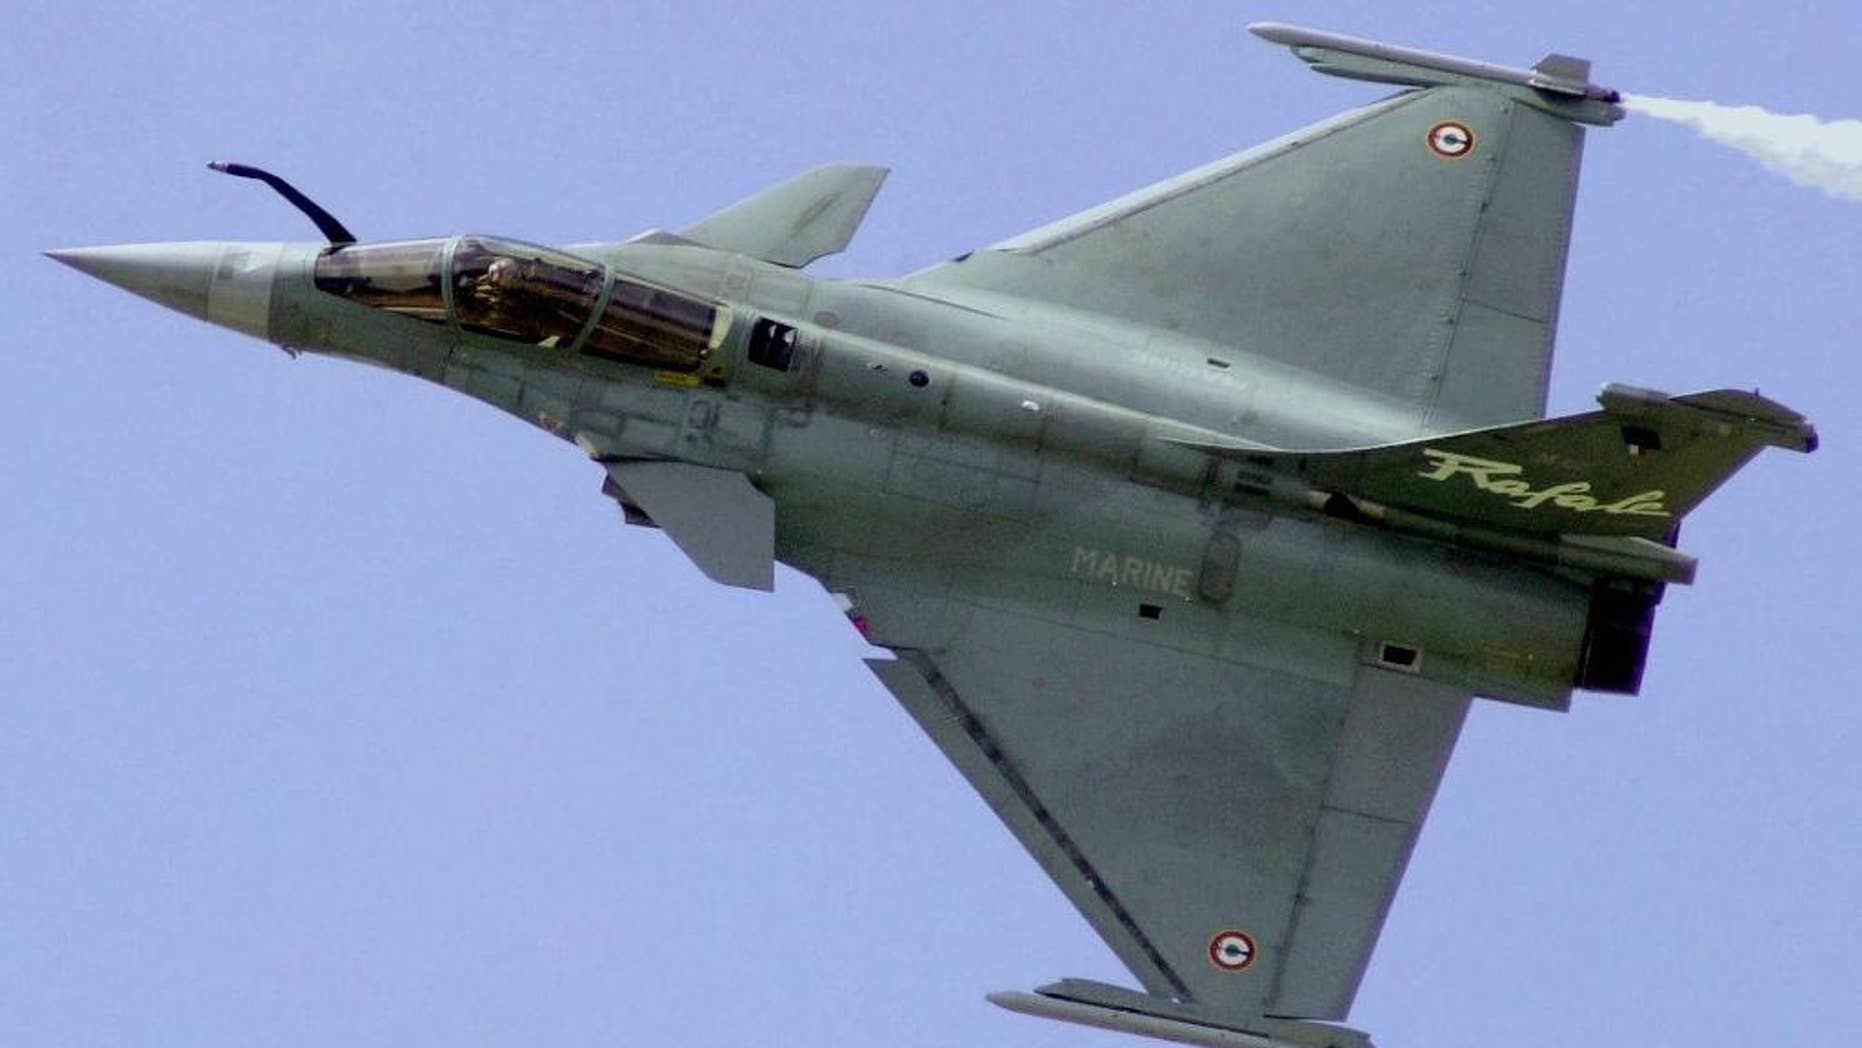 FILE - In this June 21, 2001 file photo, a French Air Force Rafale manufactured by France's Dassault Aviation speeds above Le Bourget airport, north of Paris, during the 44th Paris Air Show, in France. A French defense official said Tuesday, Dec. 2, 2014, India is close to finalizing a deal to buy 126 Rafale fighter planes for about 12 billion euros ($15 billion). It would mark France's first foreign sale of the combat-tested planes. (AP Photo/Remy de la Mauviniere, File)